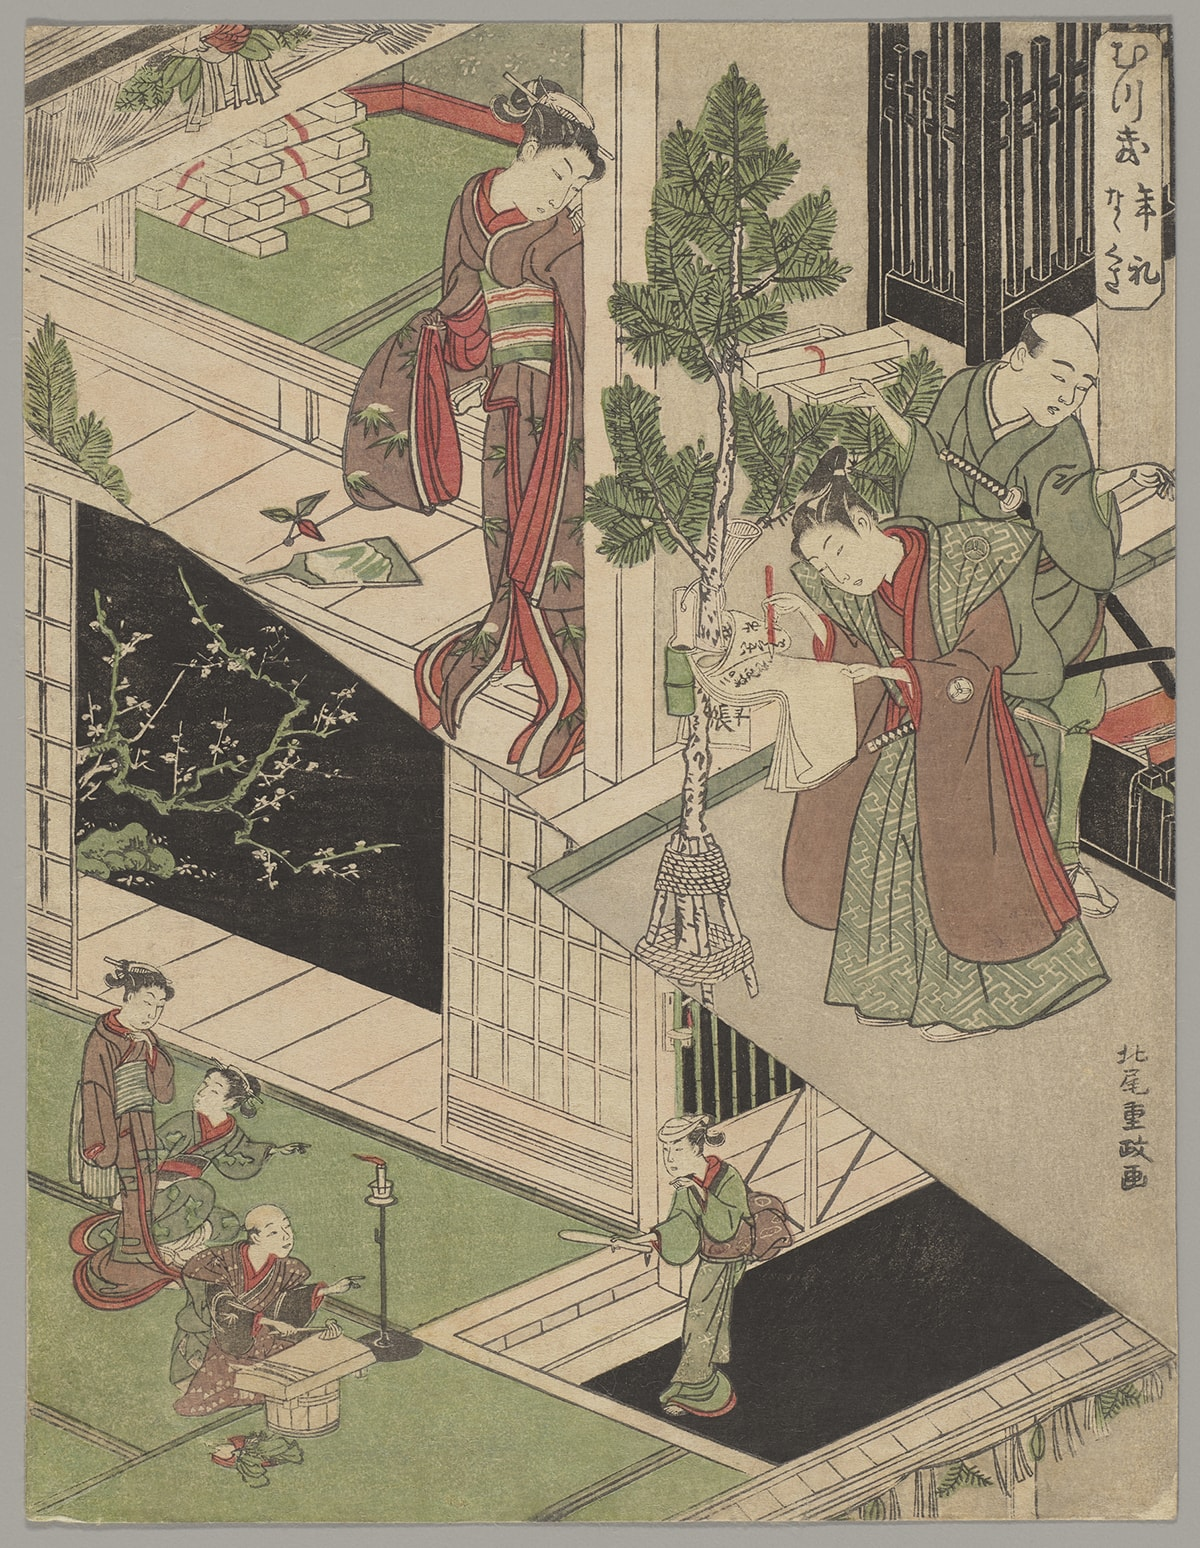 The First Month: New Year Visits, The Seven Herbs Ceremony, 9 12/16 x 7 ½ inches, color woodblock on paper. A vertical rectangular print divided into two scenes diagonally by a zigzagged line. The top half is further divided into a left half and a right half. The left shows a female figure dressed in a mauve and red kimono with her black hair pulled back in an elaborate hairstyle. She stands on a veranda looking through a doorway to an interior. Behind her are white gift boxes stacked on green tatami flooring. At right, a young man in a mauve and green patterned kimono writes on a sheaf of paper that is tied to a small pine tree. Behind him, another man, carries gifts while looking off to the right. This man is bald on top and wears a green kimono with a sword tucked under his arm. At top right, a rectangle contains Japanese writing. The lower half of the print is separated from the top by a zigzagged diagonal line that starts above center left and continues to below center right. The scene below shows a man at left seated in front of a low table while chopping vegetables. He is bald and wears a mauve patterned kimono and holds a chopping tool in his hand while gesturing to a guest that has arrived. Next to him are a pile of vegetables on one side and on the other, a candle in a tall stand. The guest, at right, is an older woman wearing a green kimono and holds a daikon radish. She is approaching a set of steps that leads to the area with green tatami flooring the man sits upon. Behind the man are two female figures, one kneeling and gesturing towards the visitor, the other standing. They both wear kimono and are positioned near an open doorway. Beyond the doorway a blossoming tree can be seen against a black night sky.